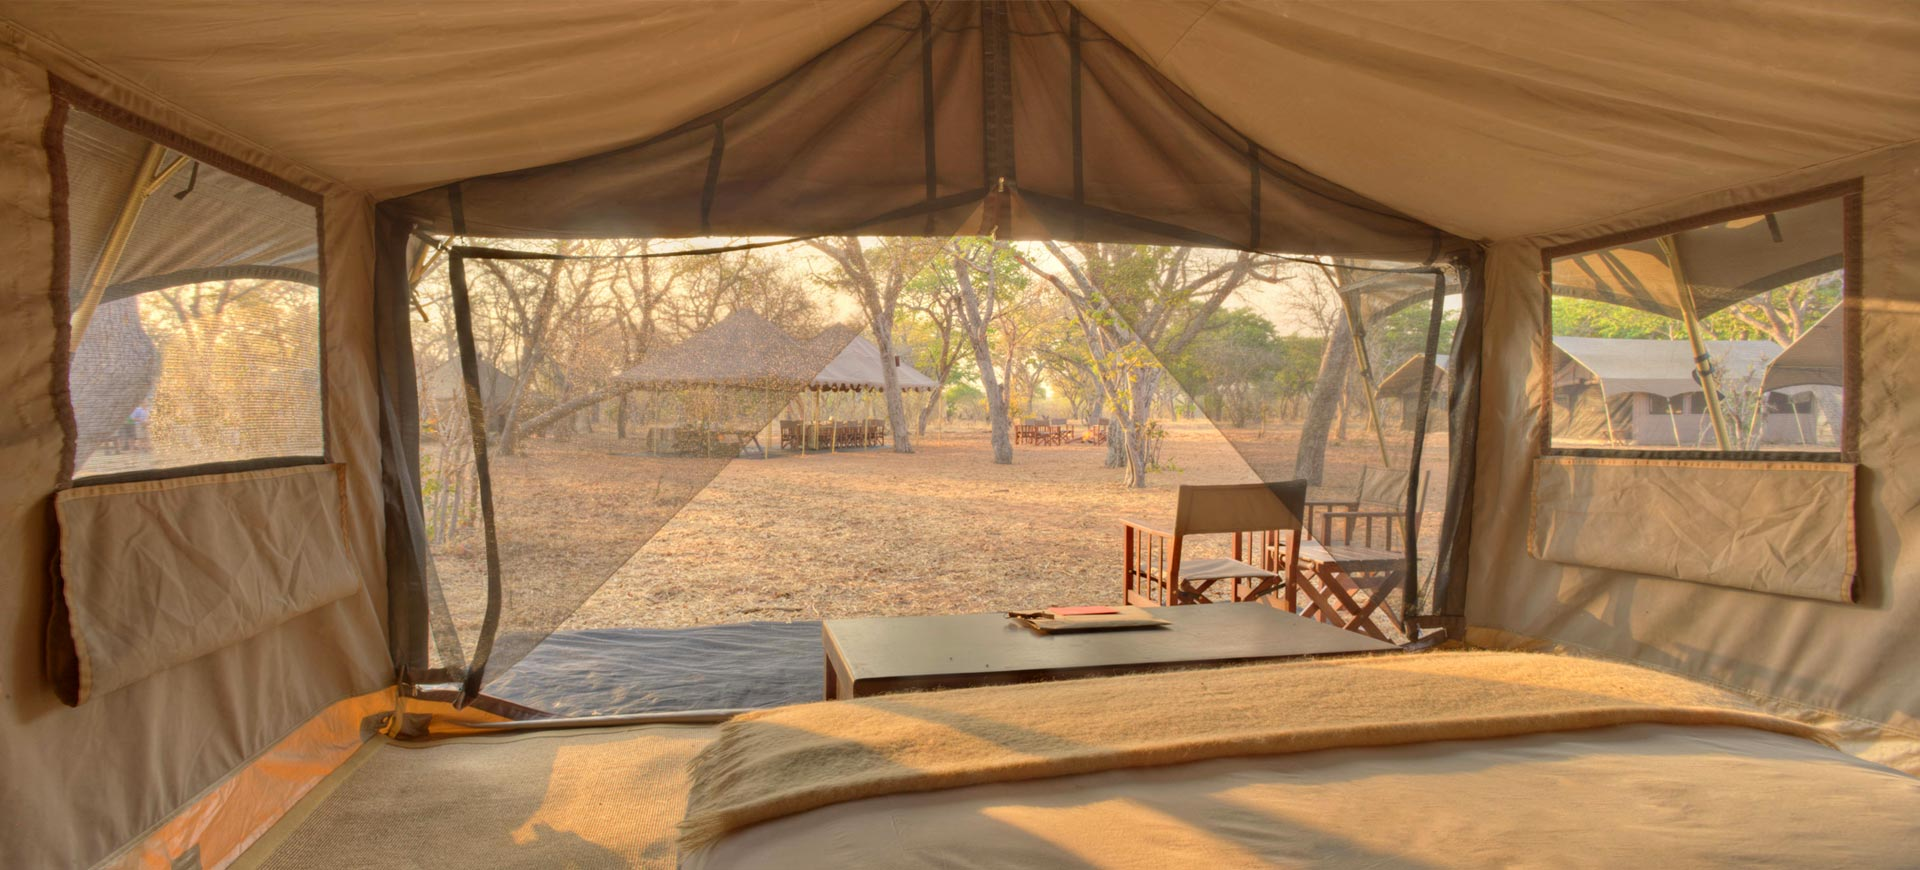 Chobe Under Canvas Tent